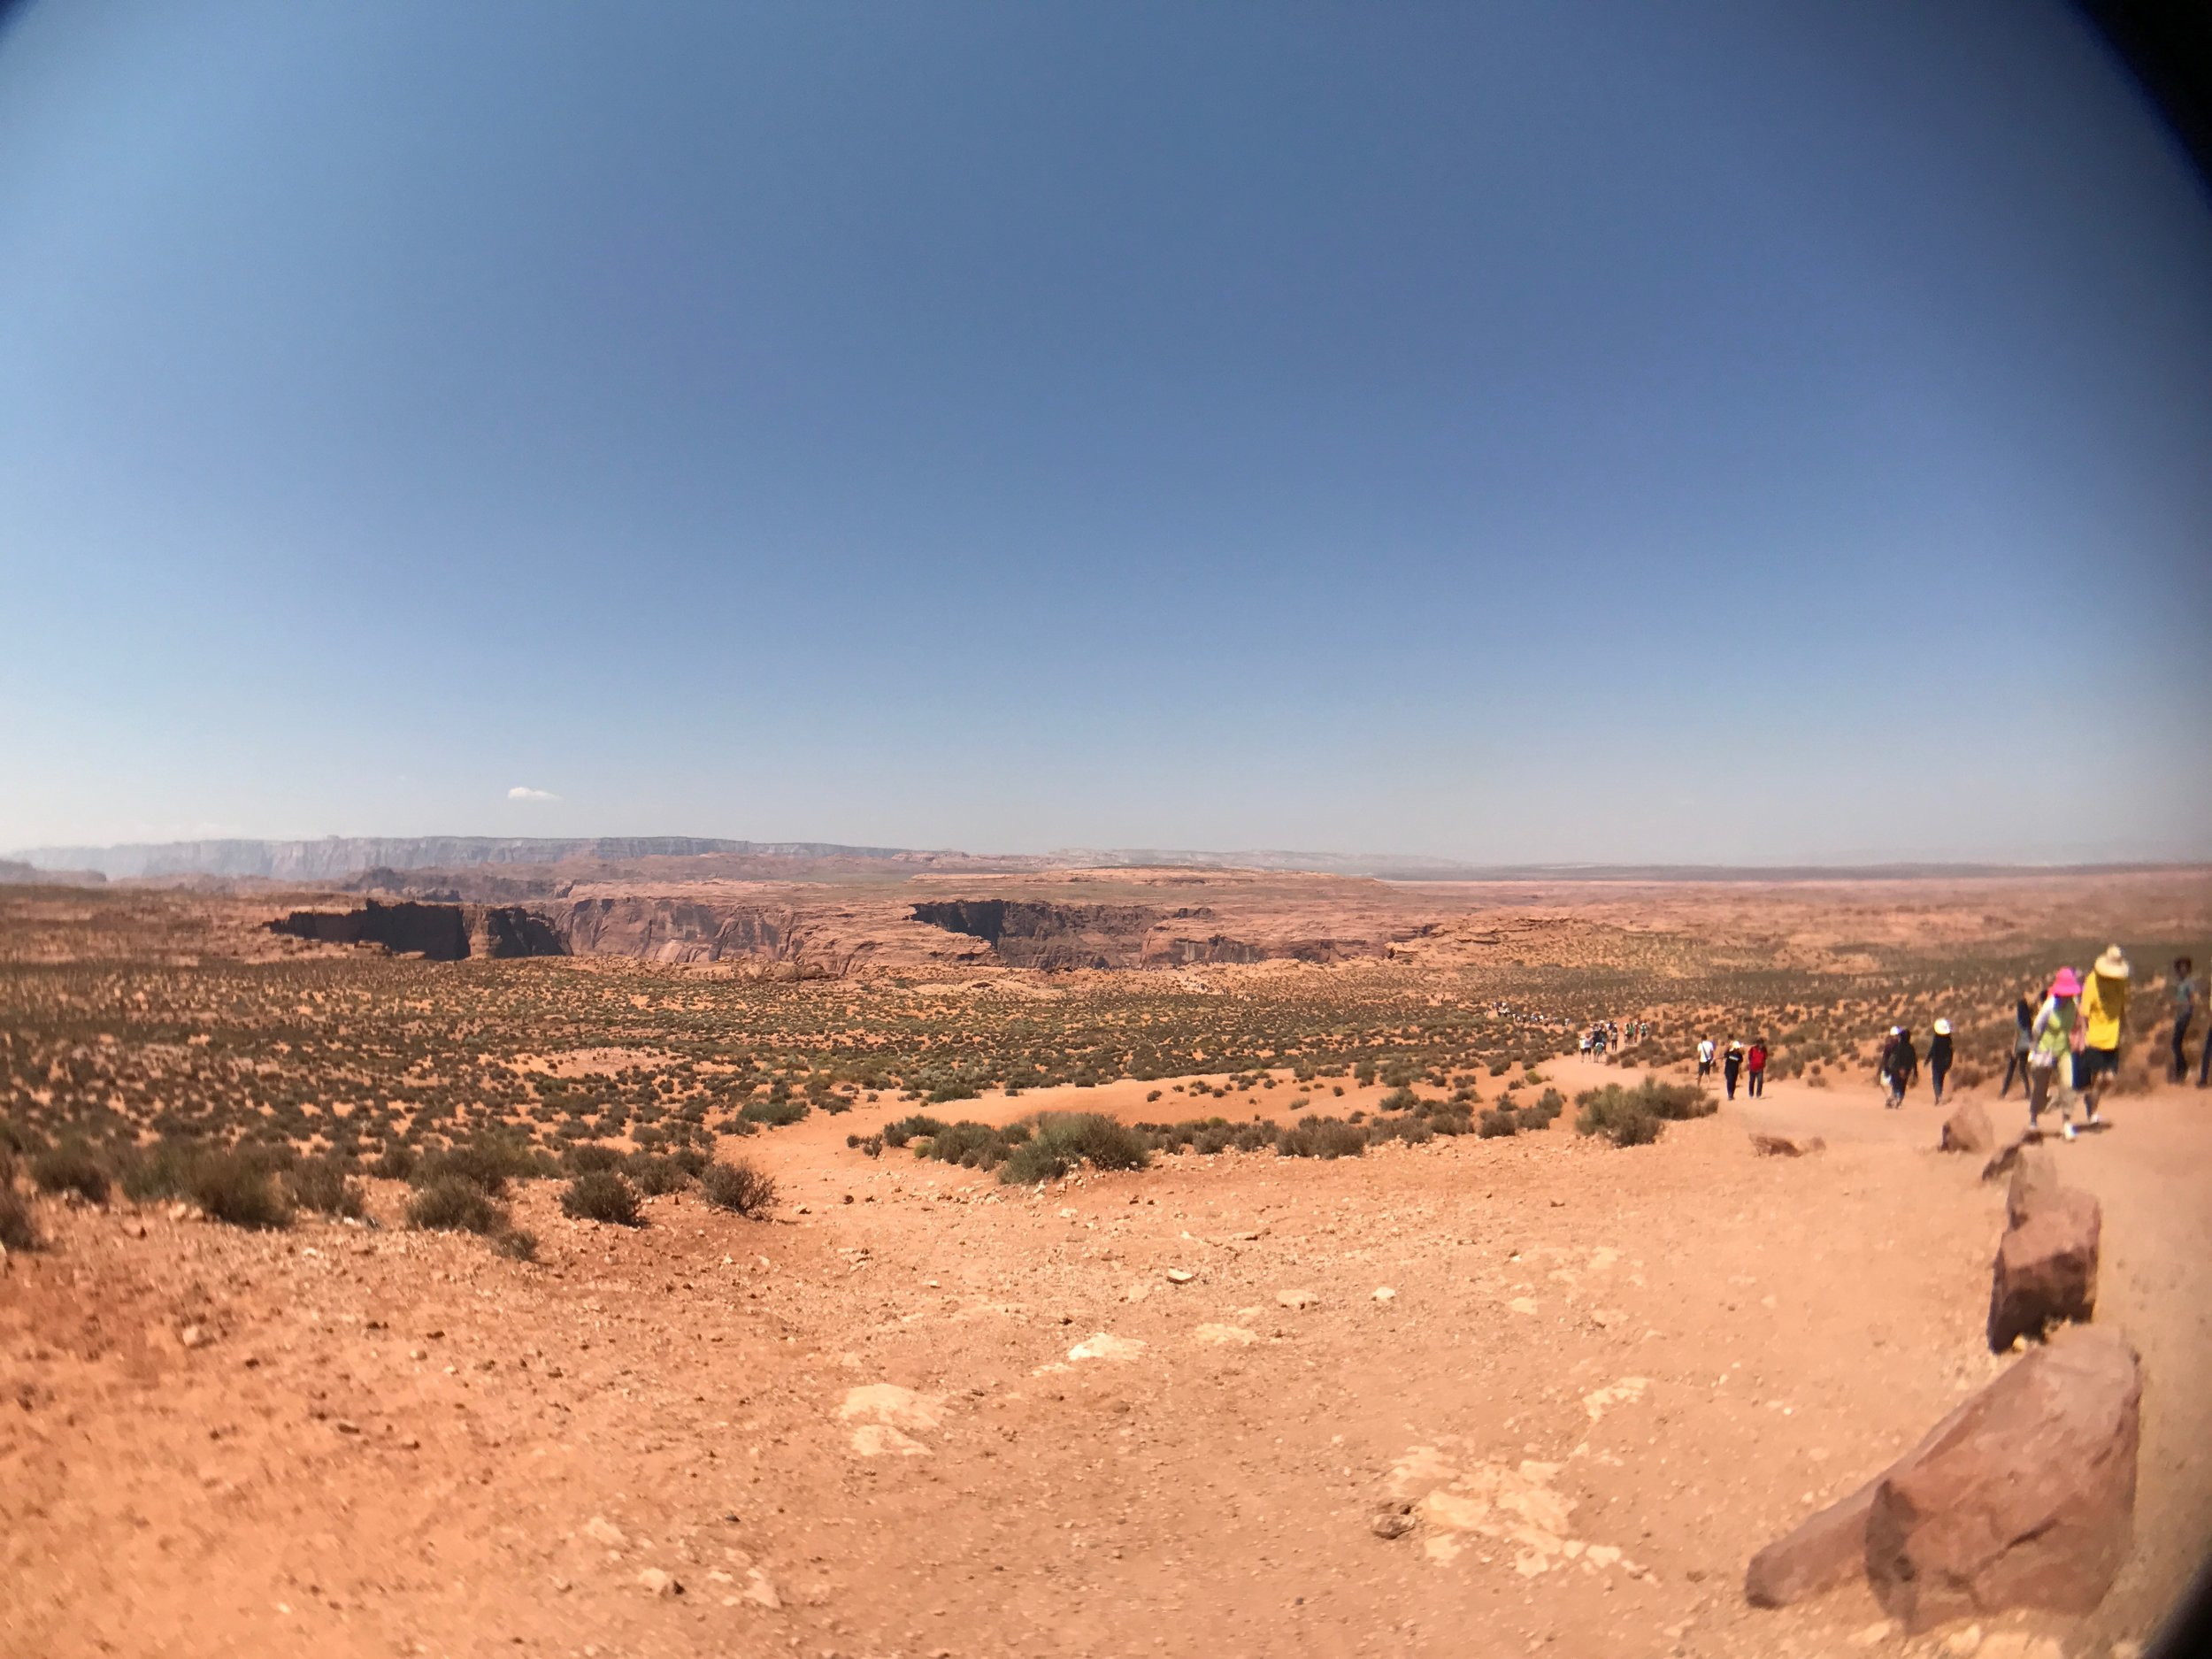 My view of the trail to Horseshoe Bend in Page, AZ from atop the hill